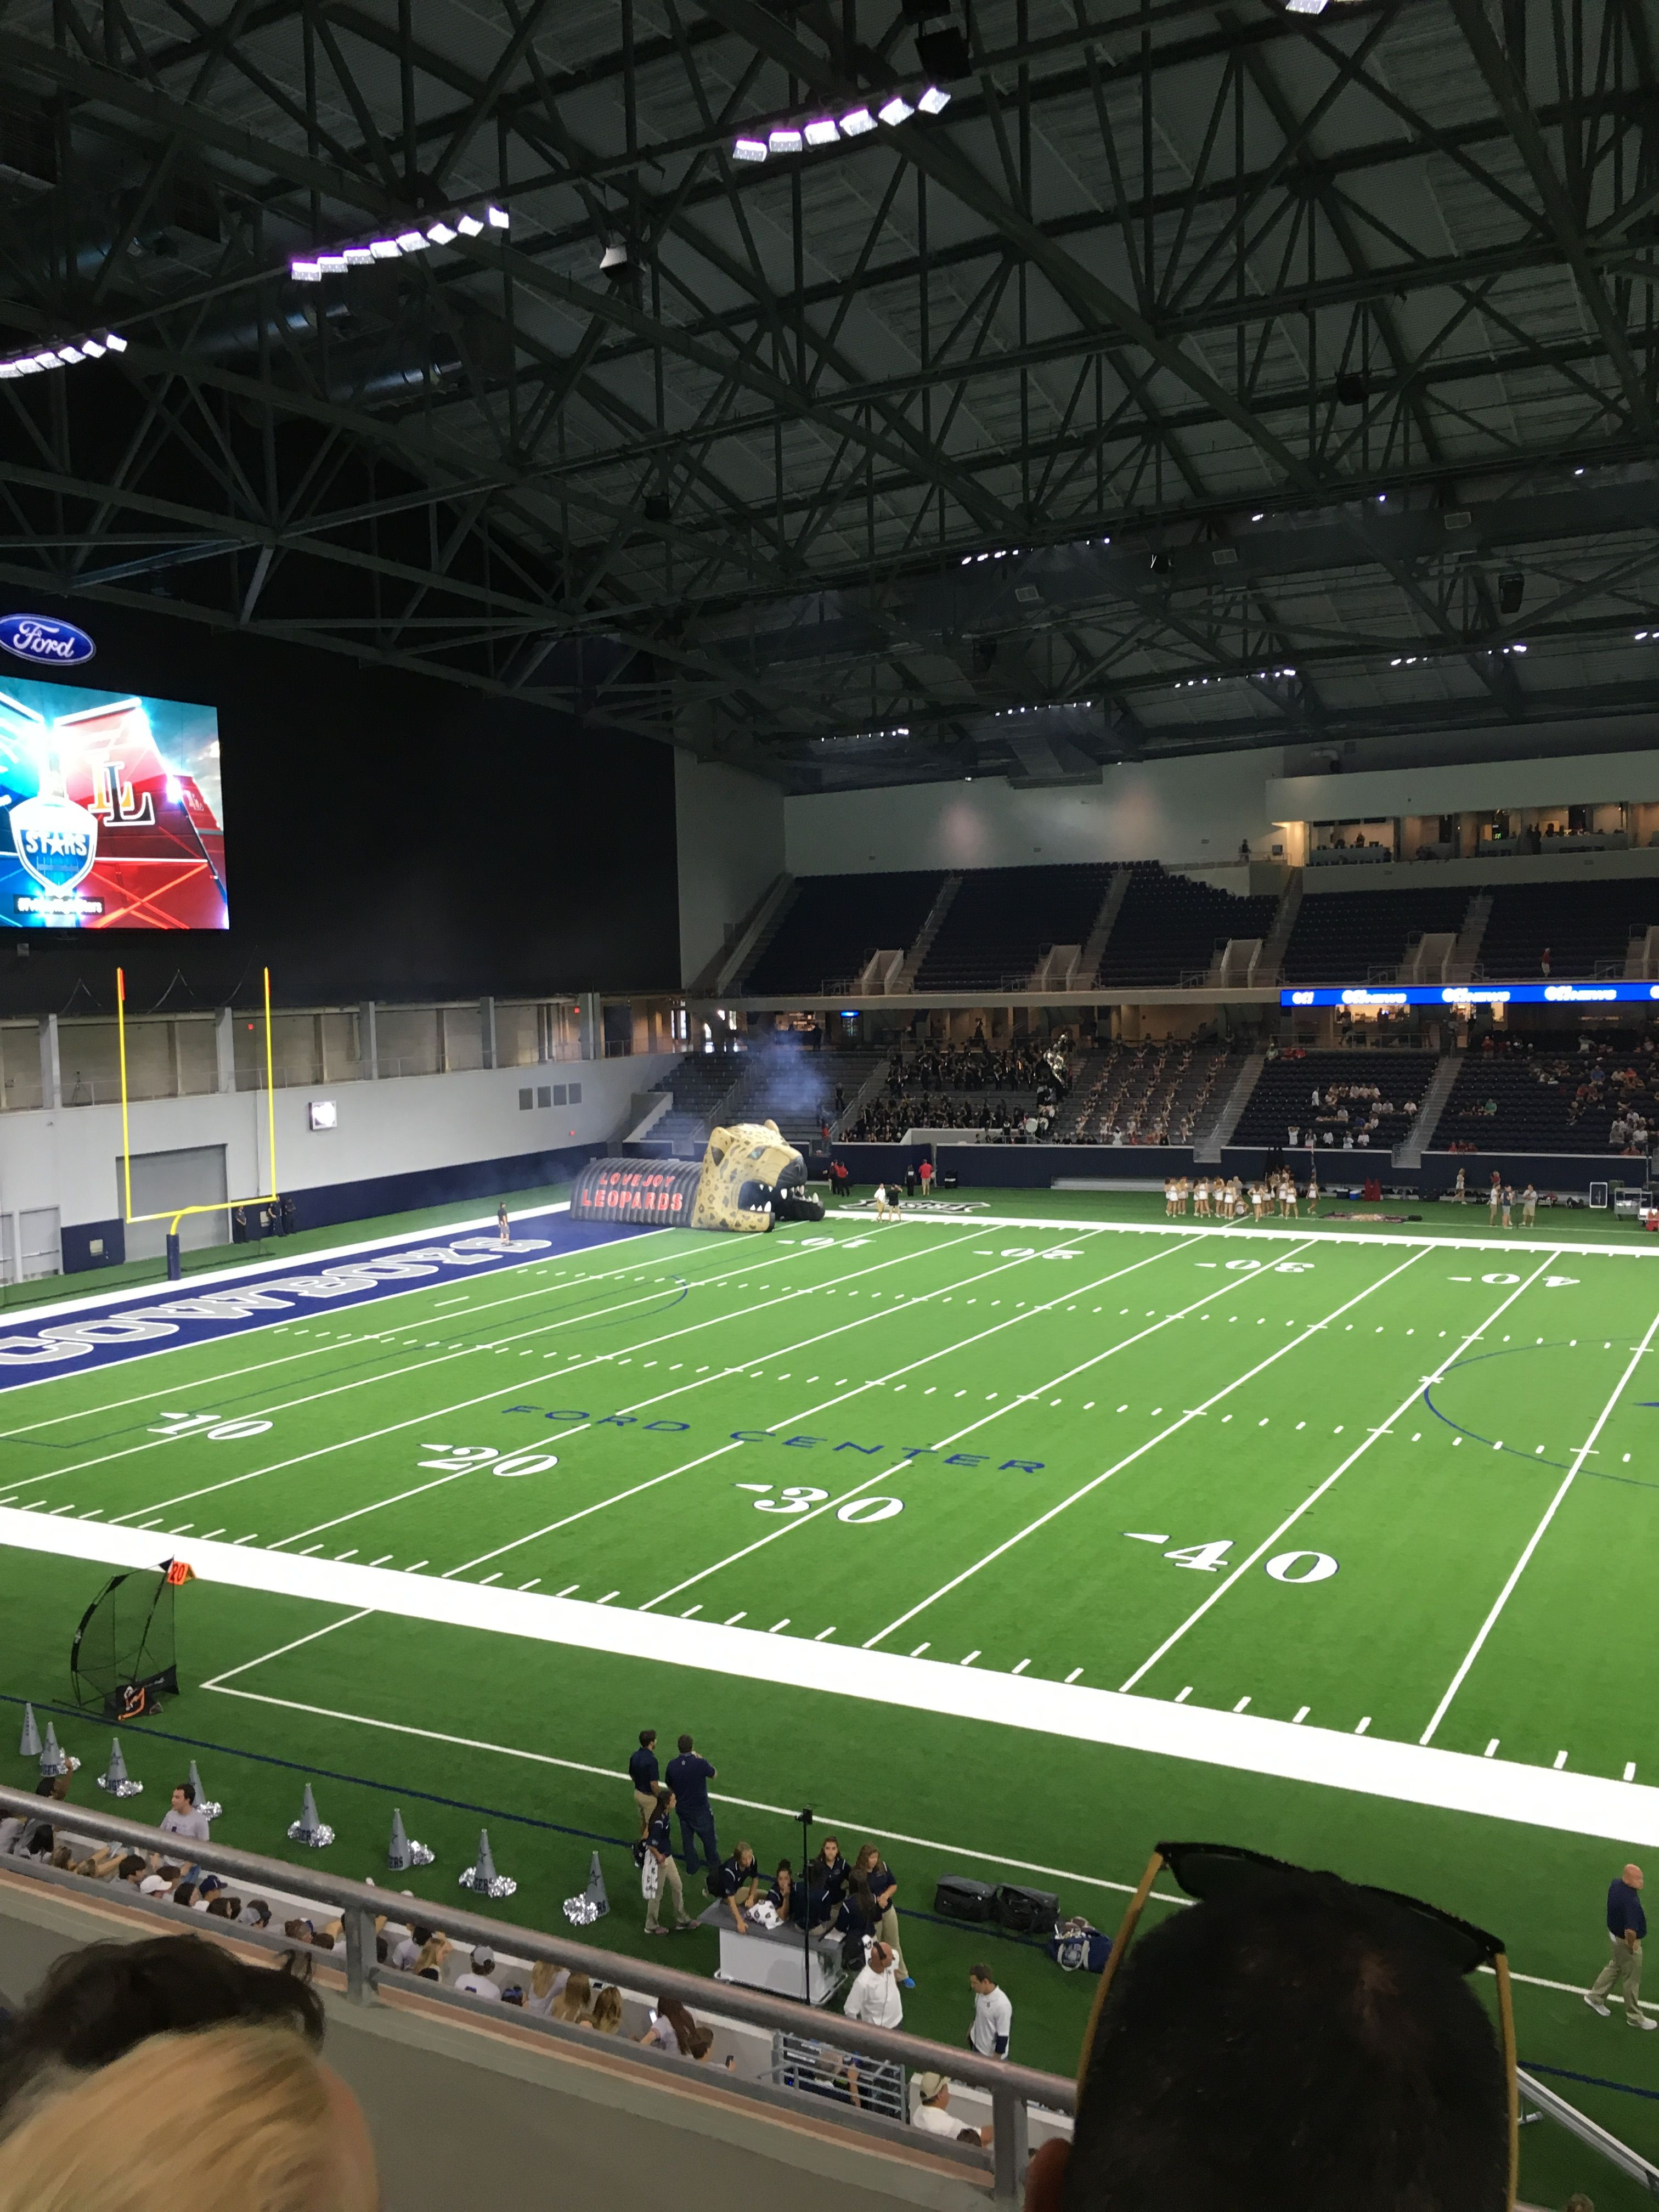 Ford Center At The Star Practice Facility Of The Dallas Cowboys Nfl